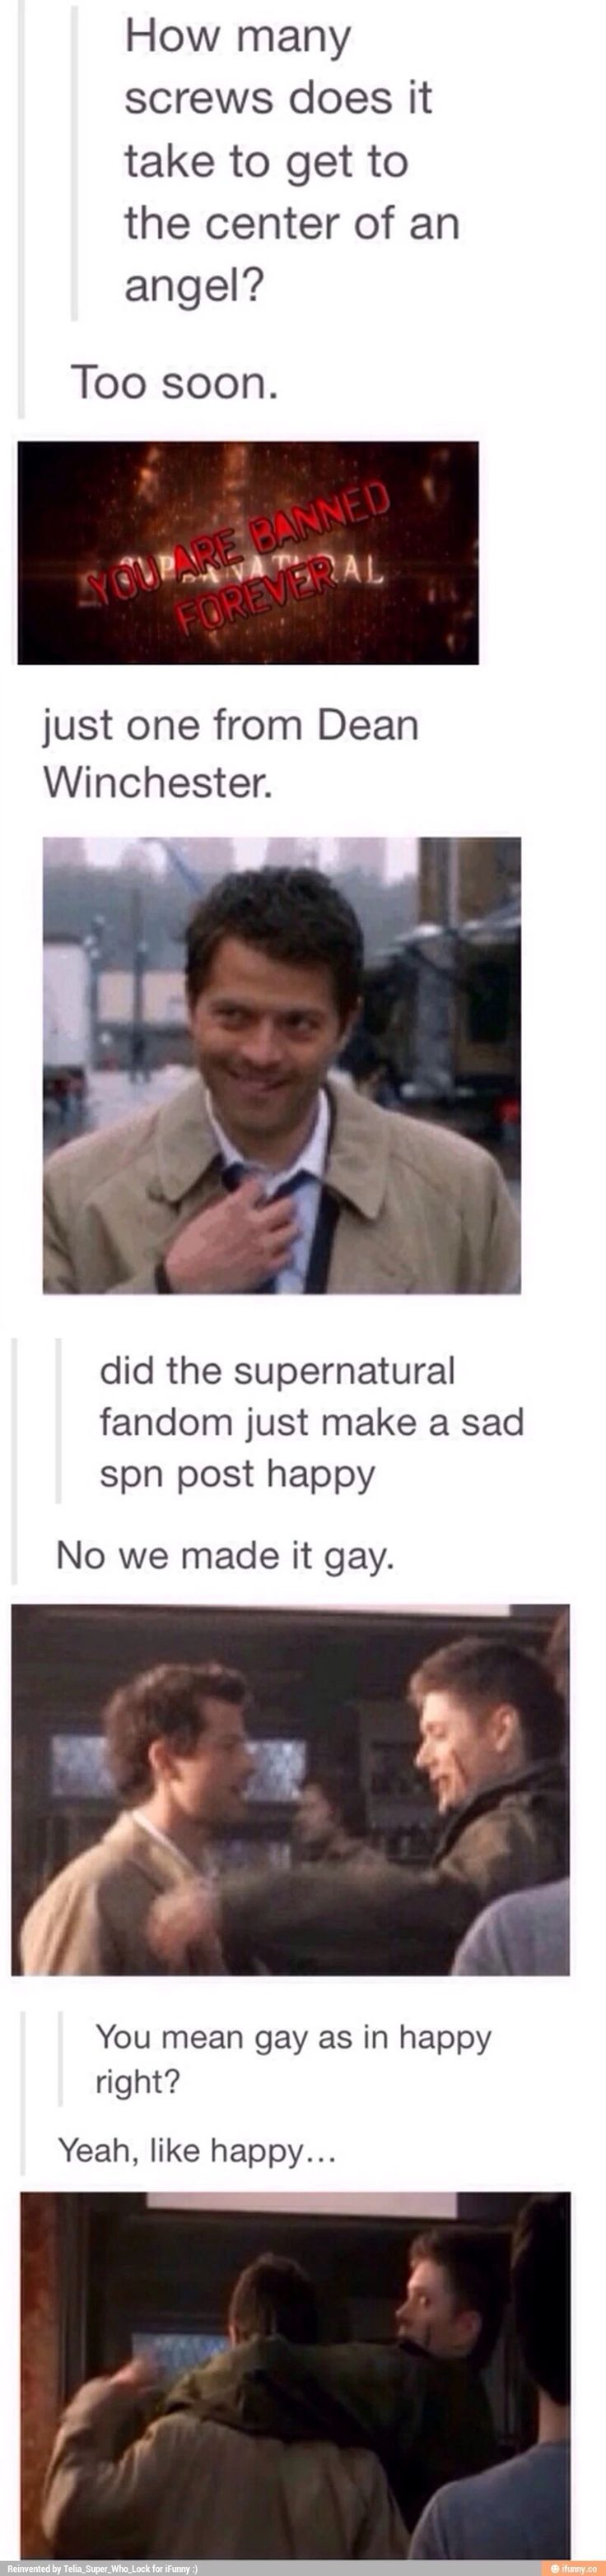 It's gay in every meaning of the word